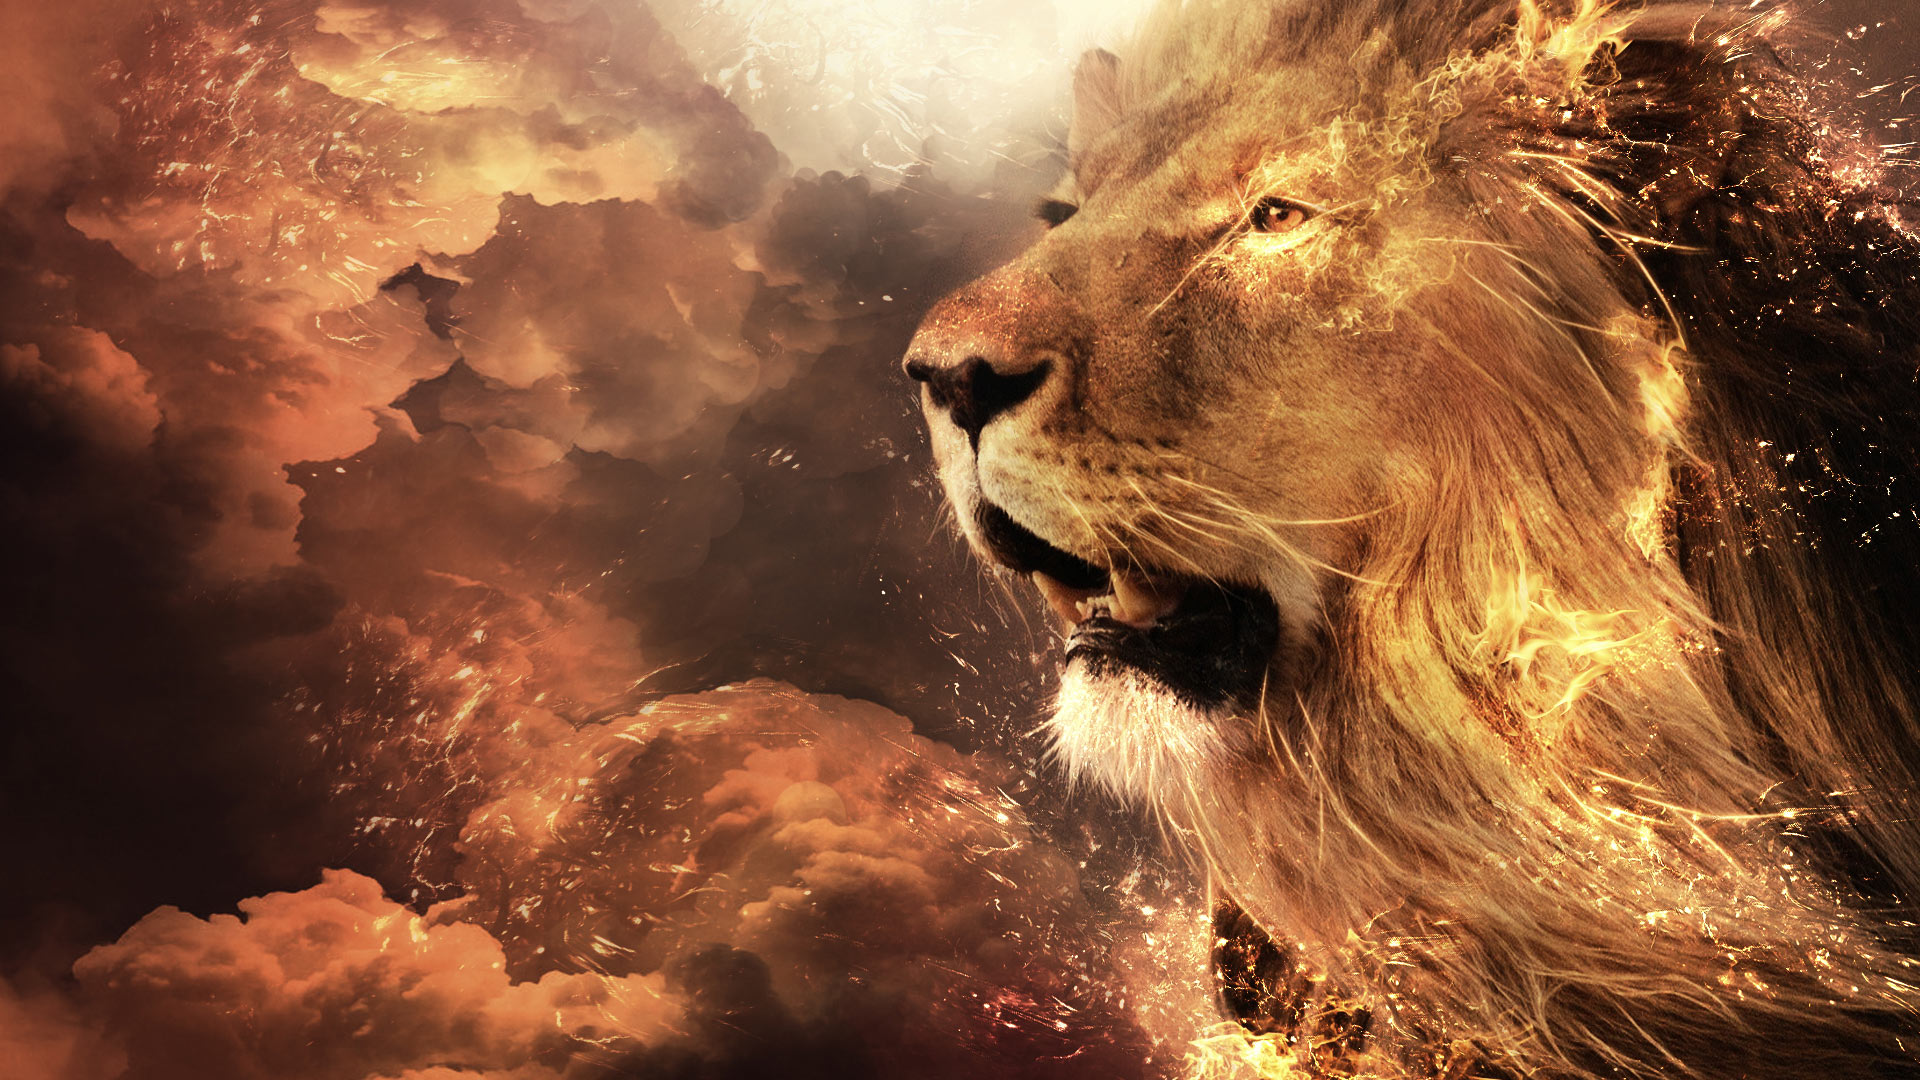 lion wallpapers hintergr252nde 1920x1080 id498189